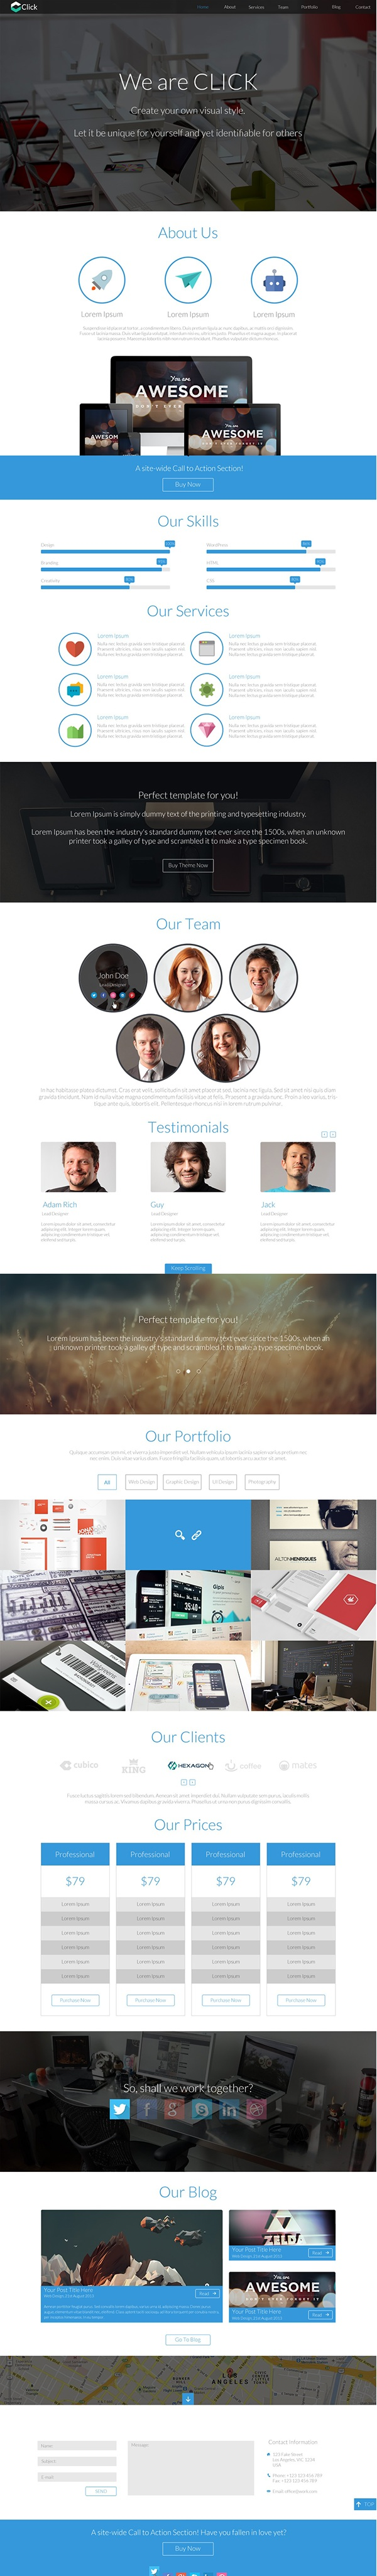 Fully Reponsive Design - Retina Ready - Template Created using HTML5/CSS3 and Bootstrap 3.0 - Revolution Slider Included ($12) - Font Awesome Included - Filtered portfolio - Parallax Effect - Working Ajax contact form with validation - Nice Hover Effect - CSS3 Animations -